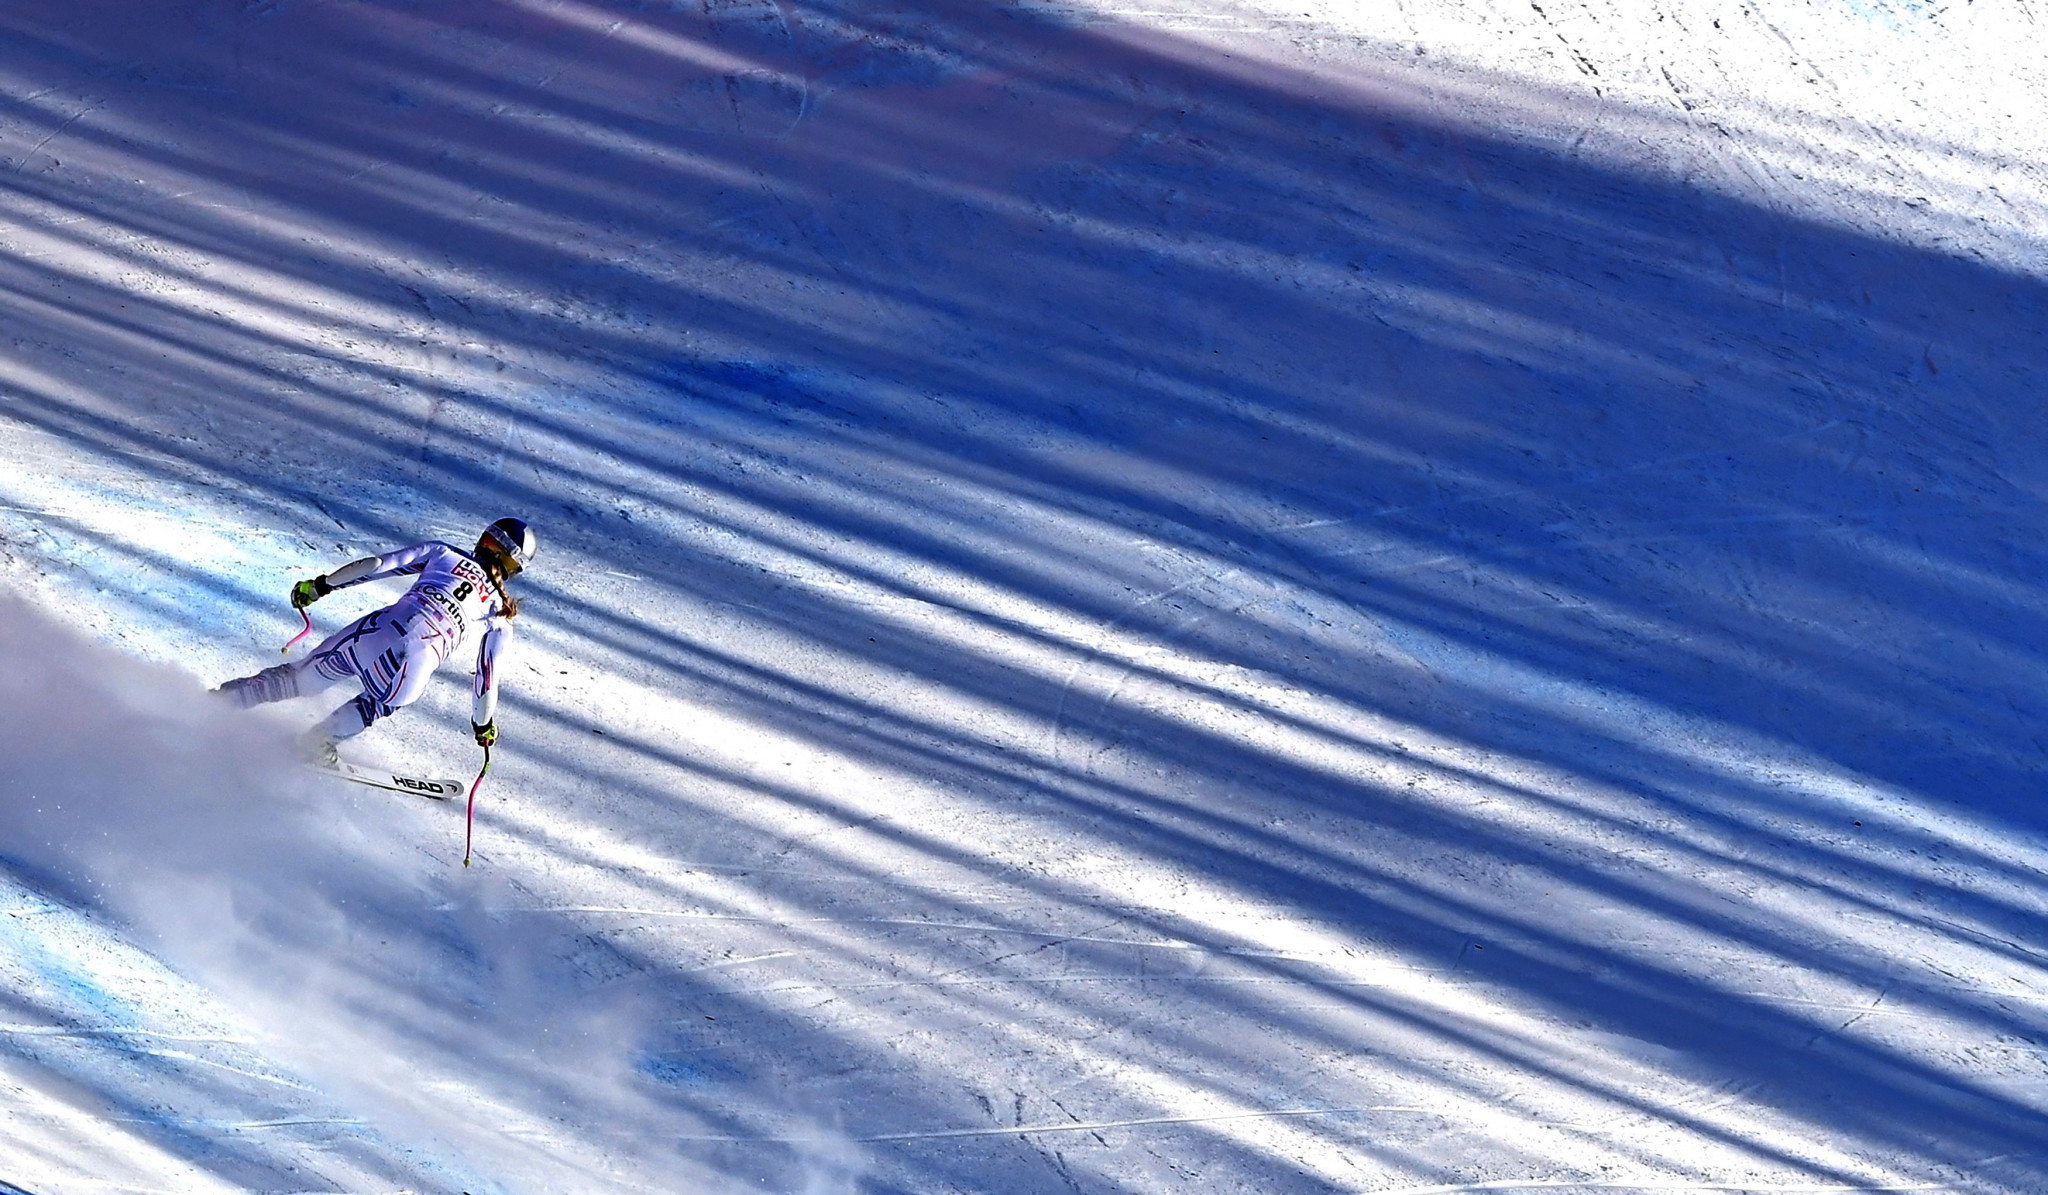 App launched for Alpine Skiing World Cup Finals in Cortina